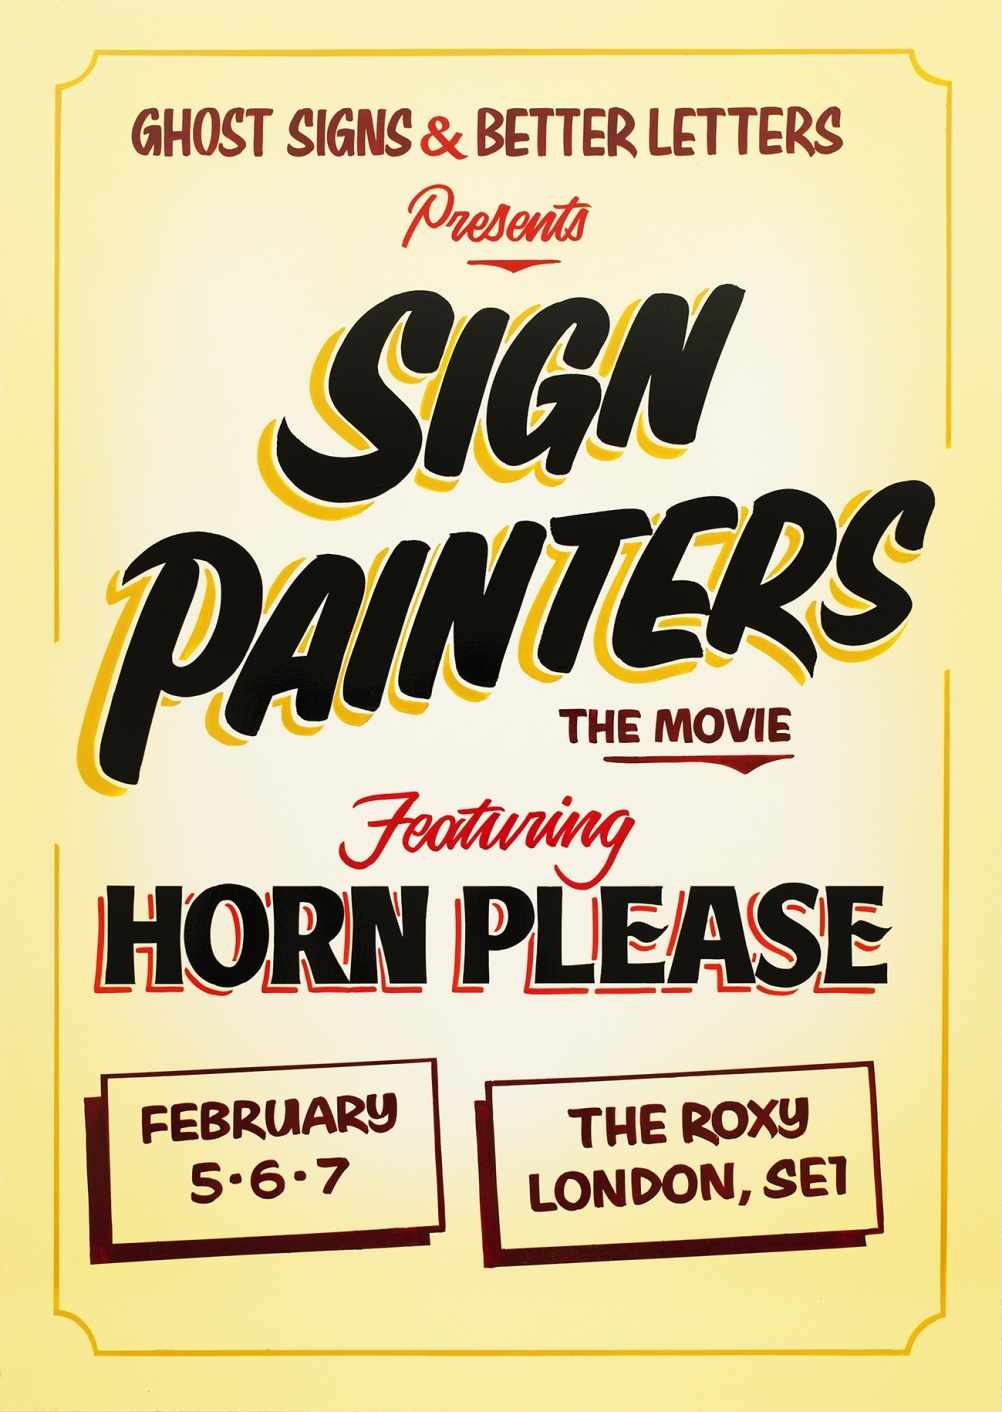 Sign Painters and Horn Please film poster